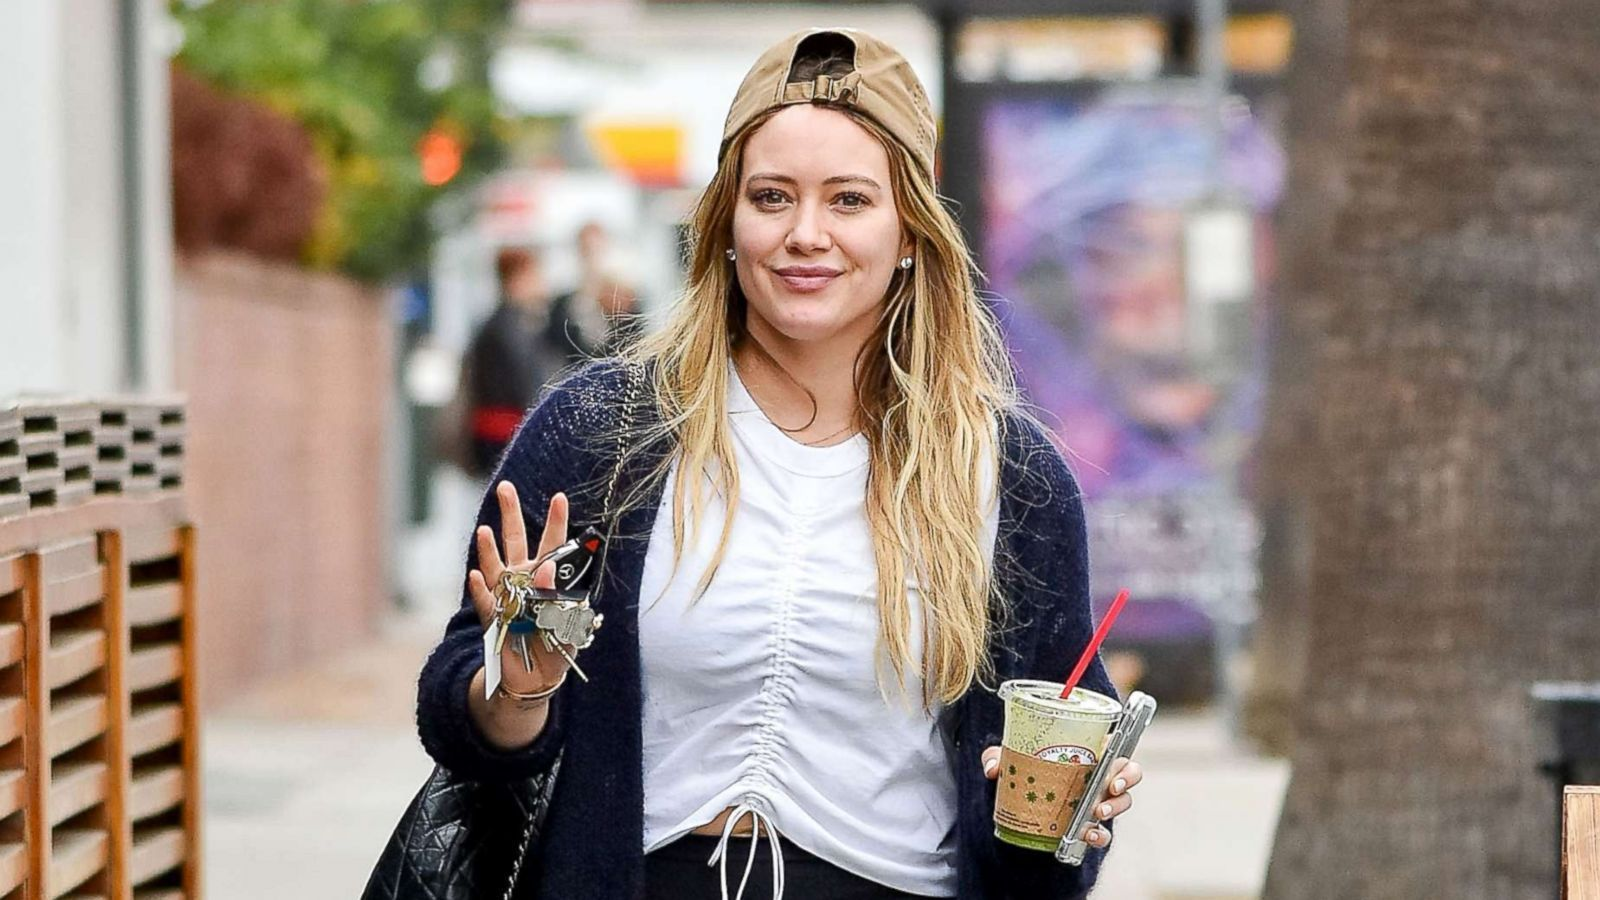 Hilary Duff Gets Real About Life As A Mom Of Two In Hilarious Instagram Post